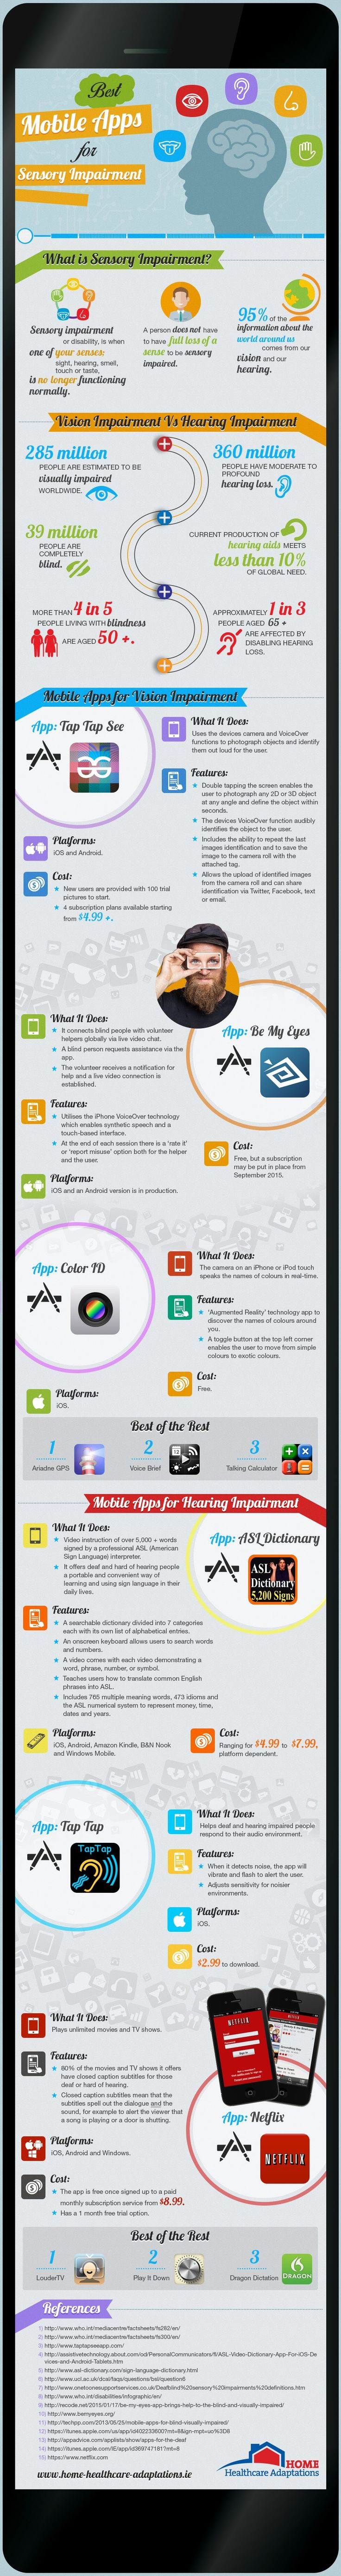 Assistive Technology: Infographic for best mobile apps for sensory impairment. Pinned by SOS Inc. Resources. Follow all our boards at pinterest.com/sostherapy/ for therapy resources.